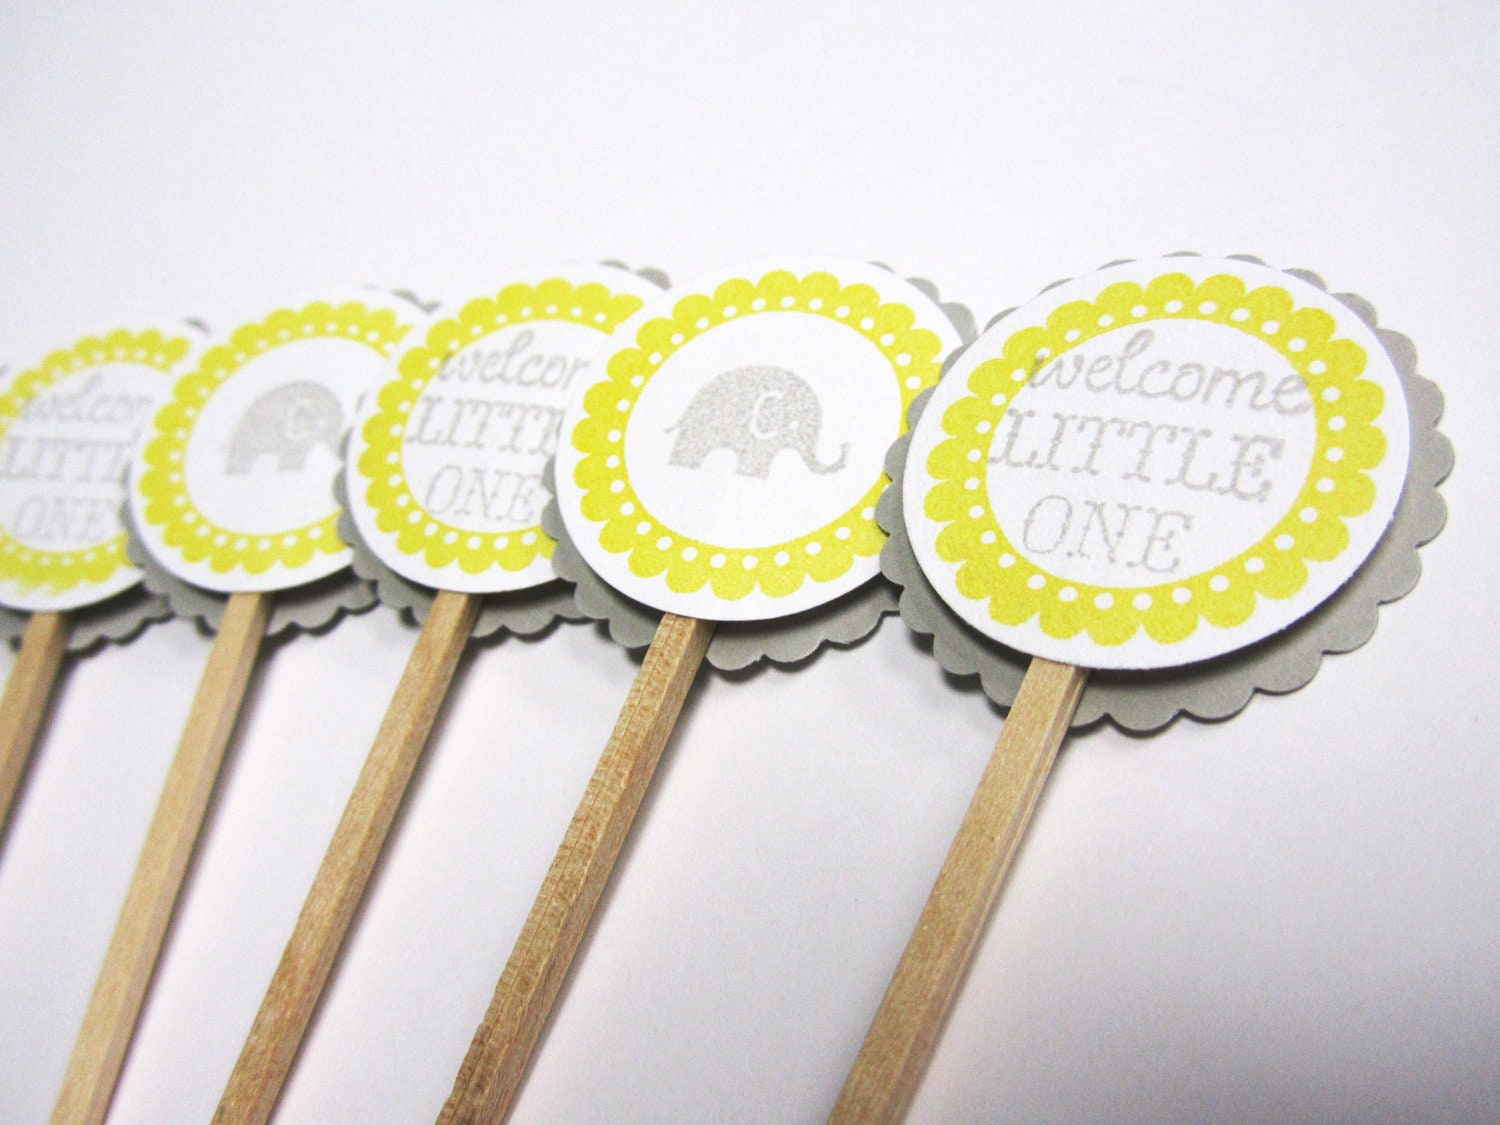 Cake Toppers Baby Shower Etsy : Baby Shower Cupcake Toppers Grey and Yellow by WildBeanlore